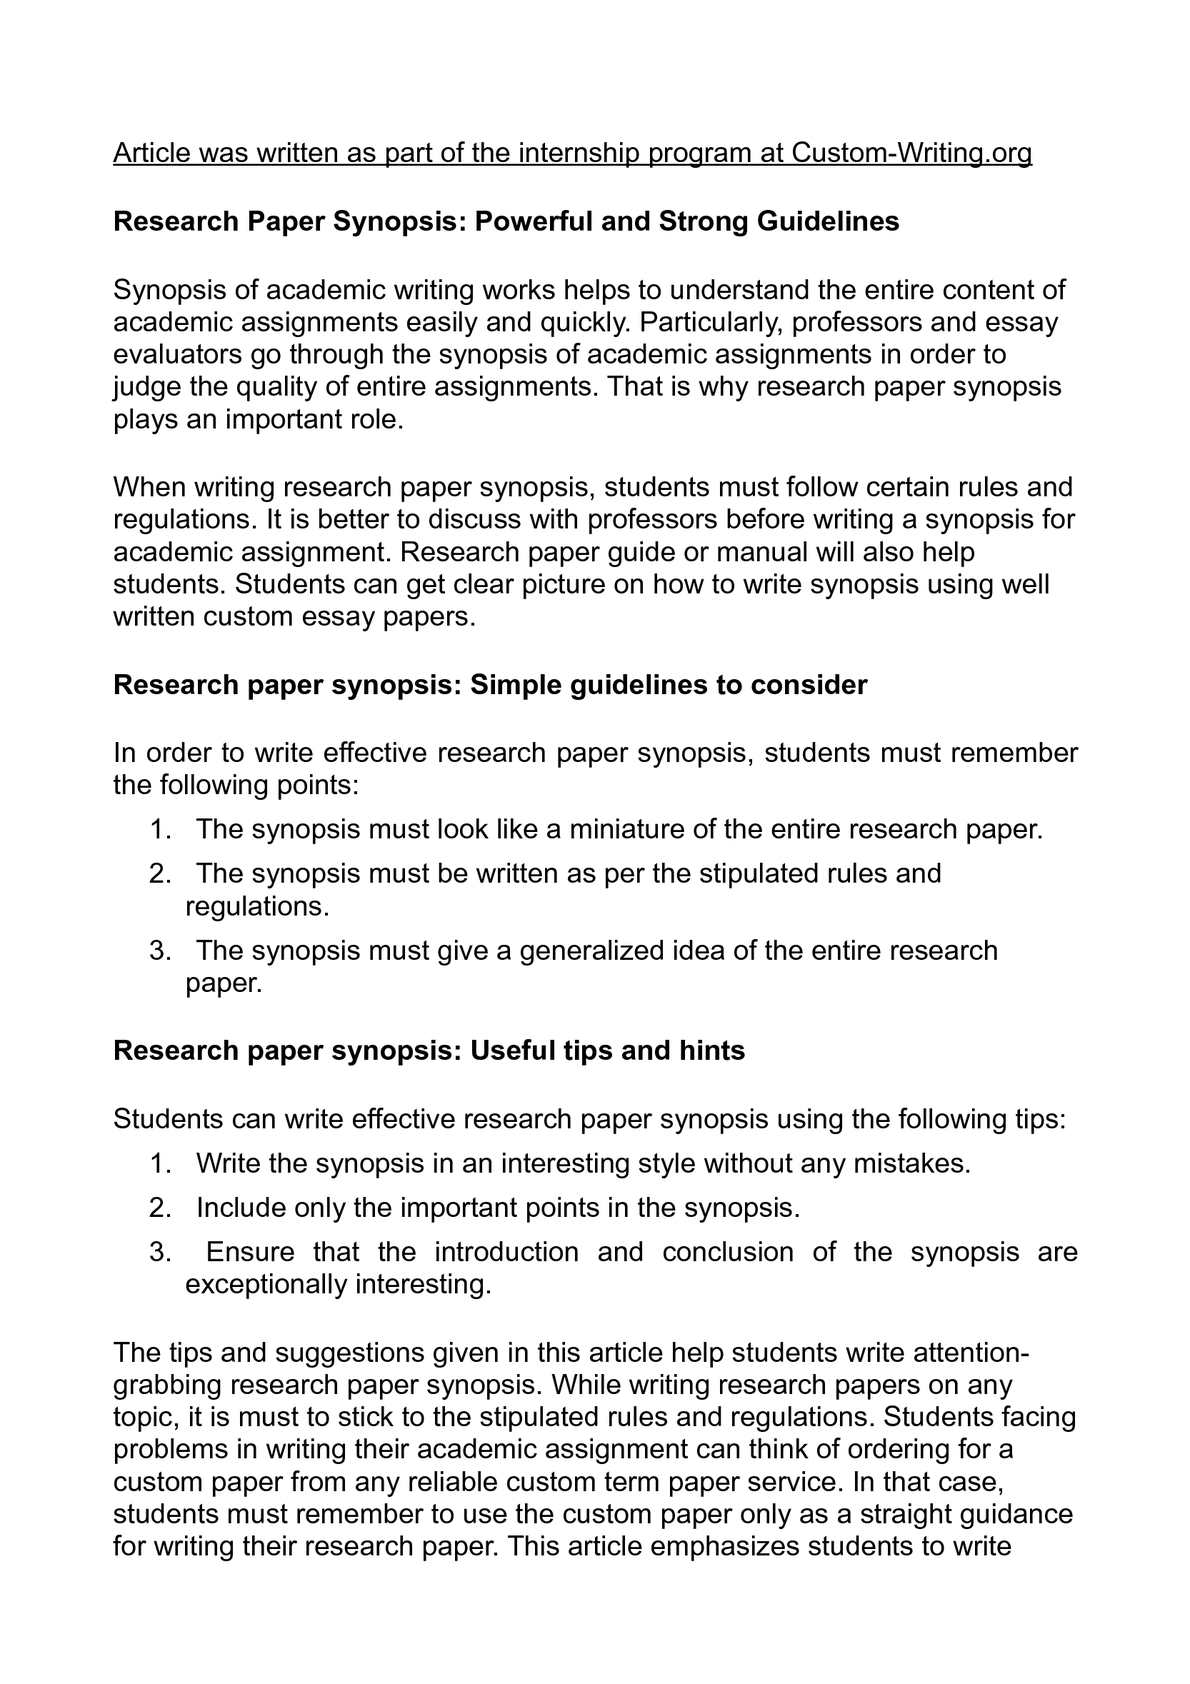 021 Custom Writing Research Papers Paper Exceptional Full